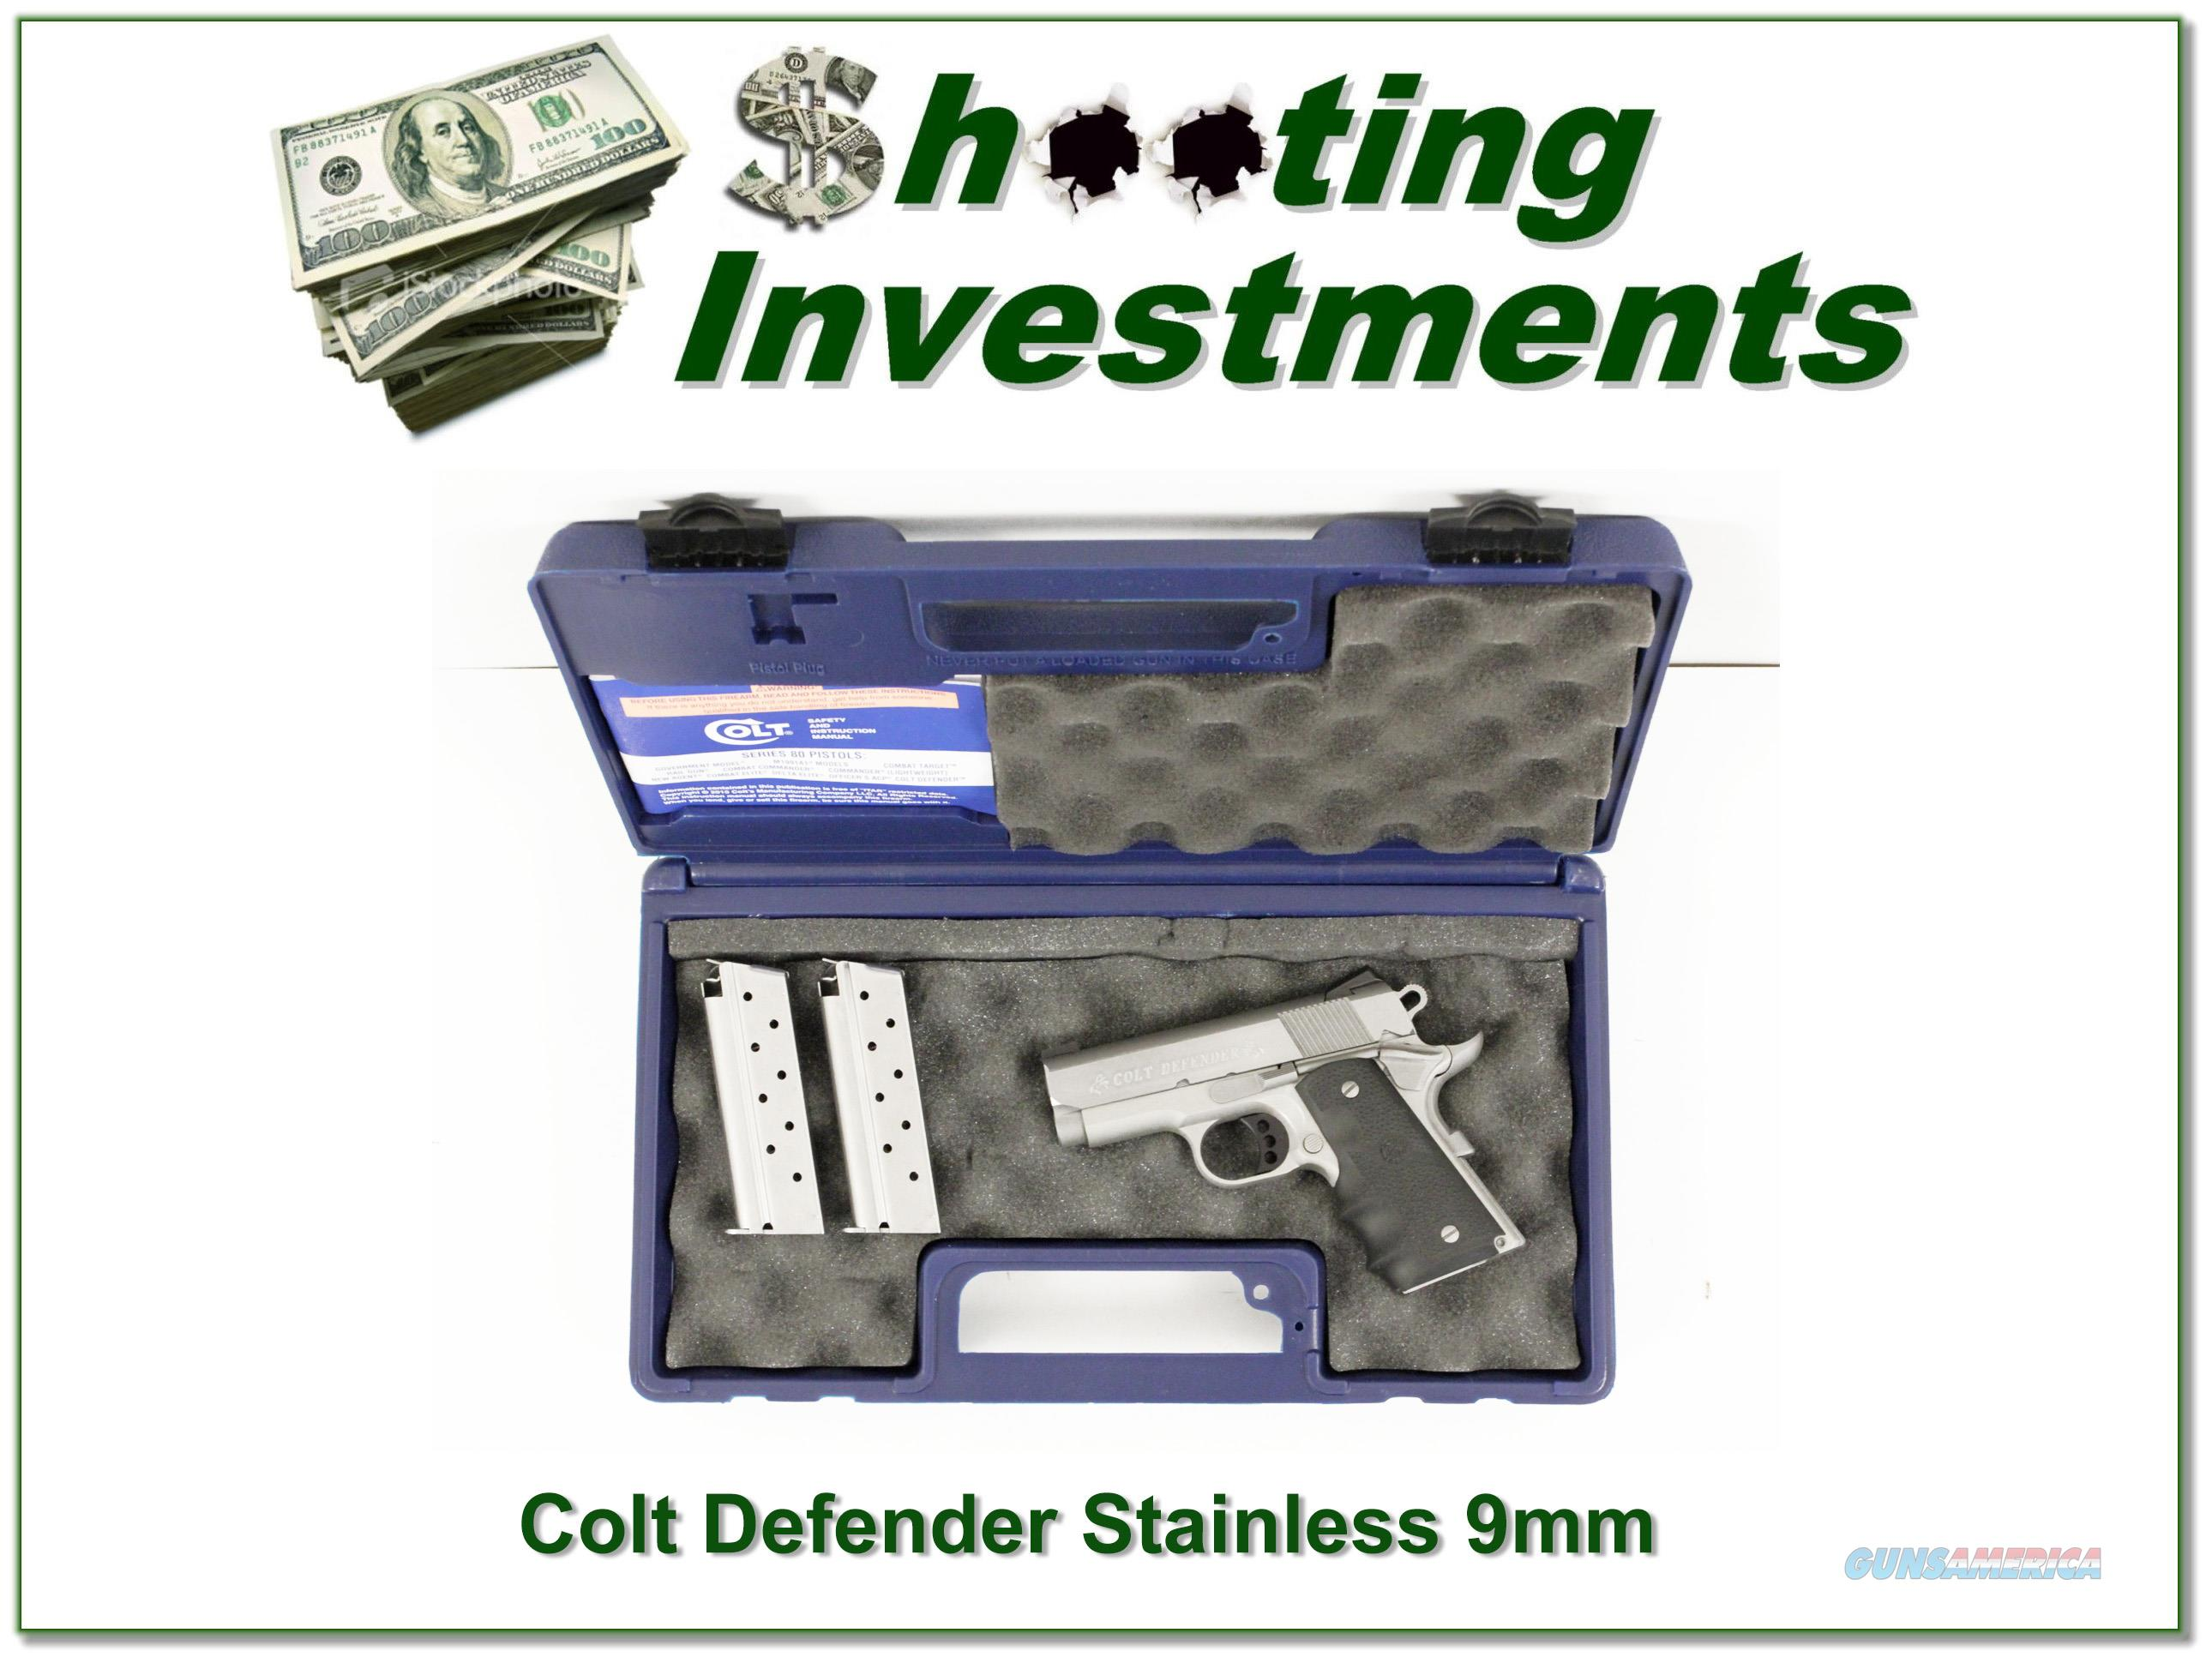 Colt Defender Lightweight Stainless 9mm  Guns > Pistols > Colt Automatic Pistols (.25, .32, & .380 cal)